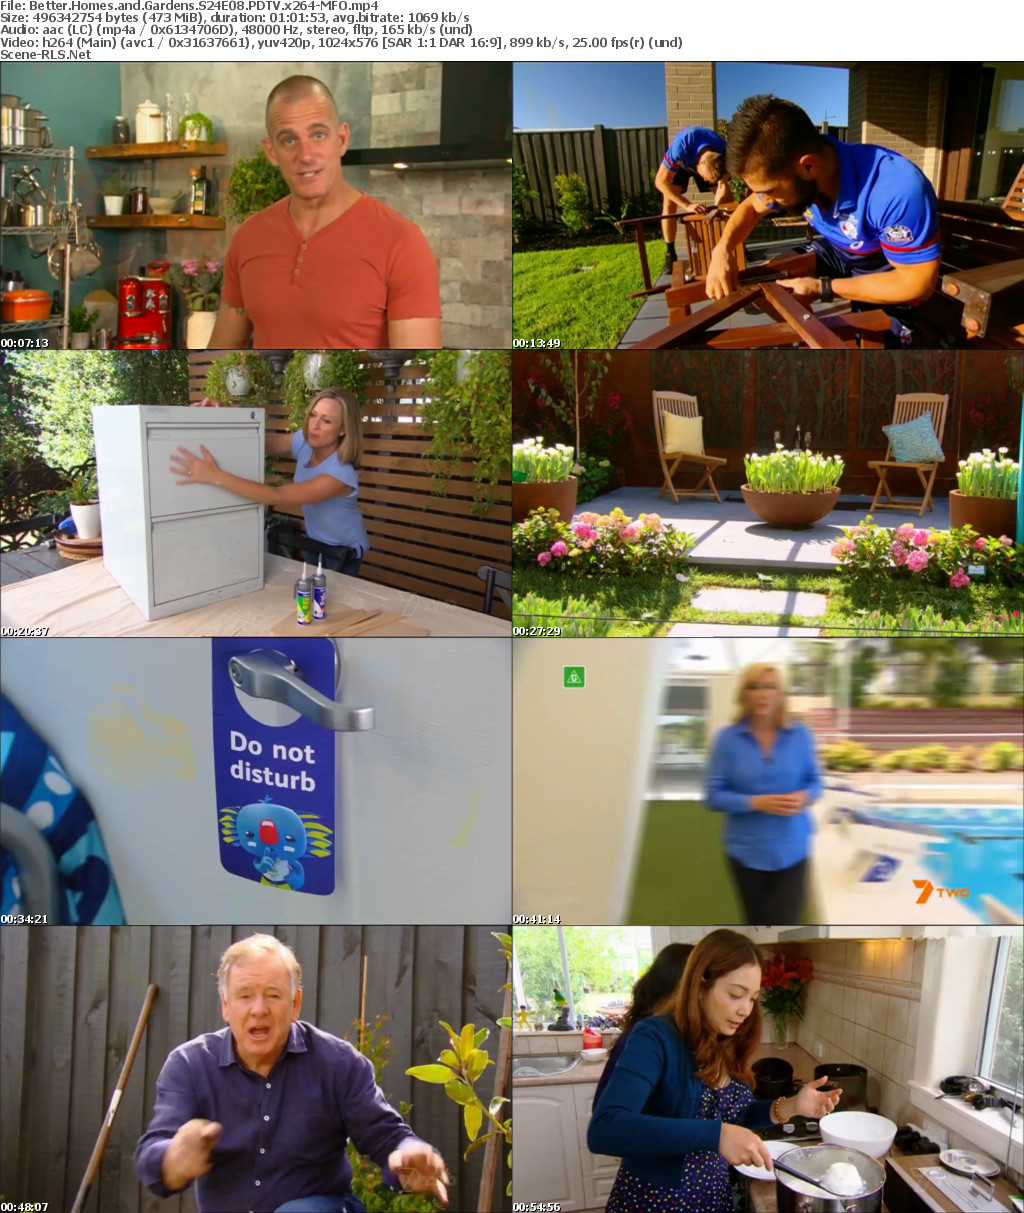 Better Homes And Gardens S24e08 Pdtv X264 Mfo Scene Release